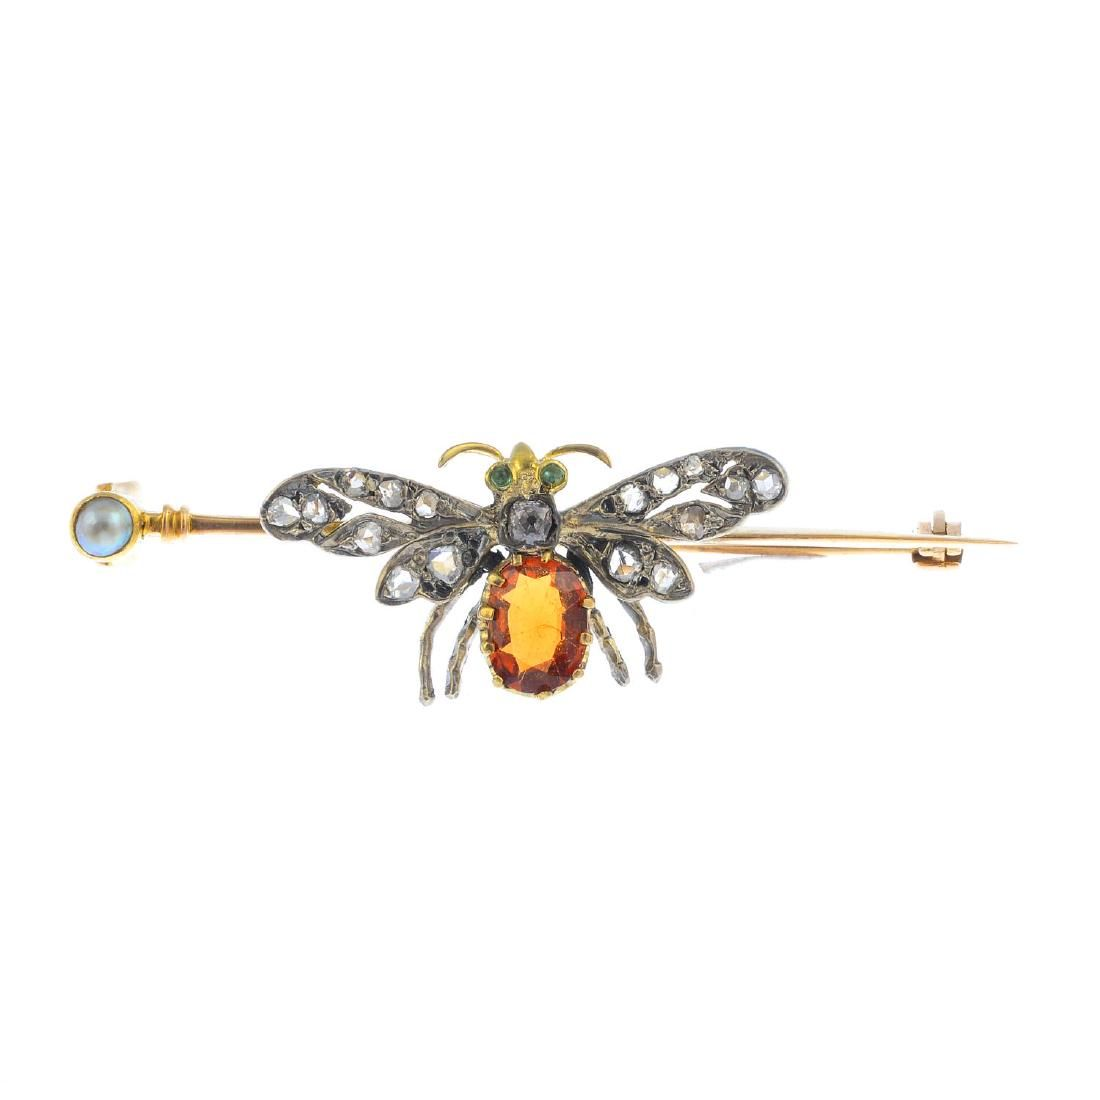 An early 20th century gold, diamond and gem-set brooch.